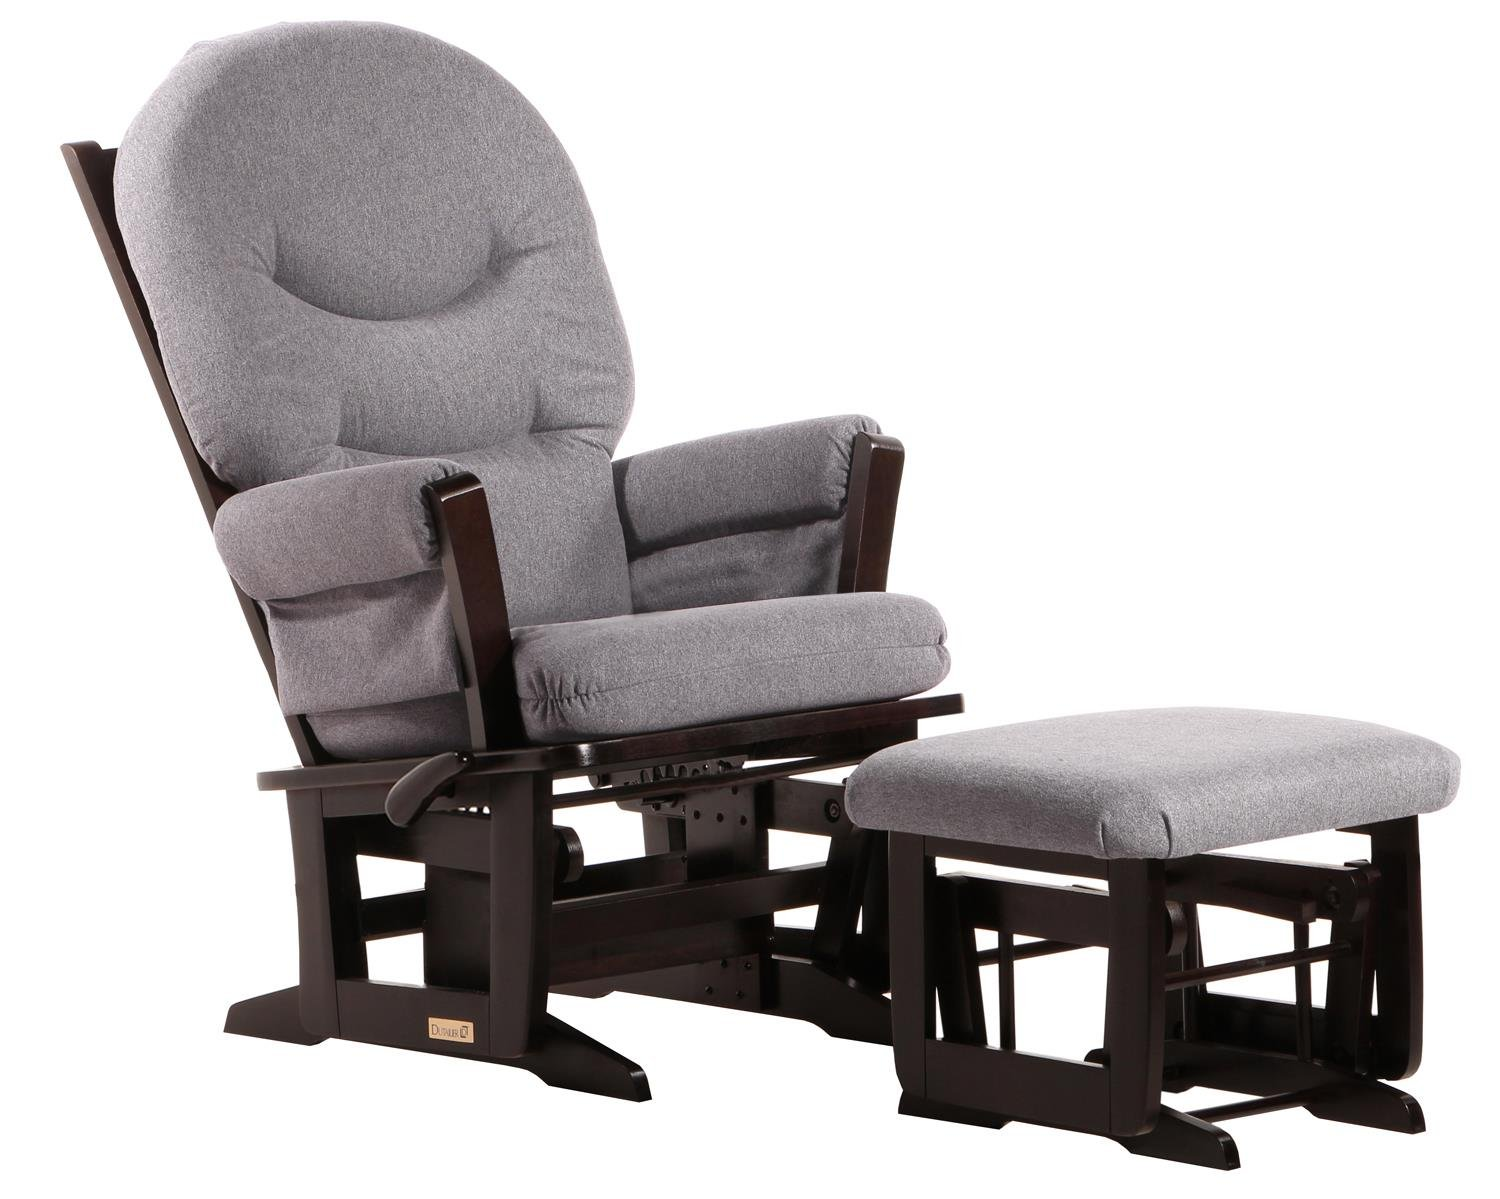 Dutailier Modern 0386 Glider Multiposition-Lock Recline with Ottoman Included by Dutailier